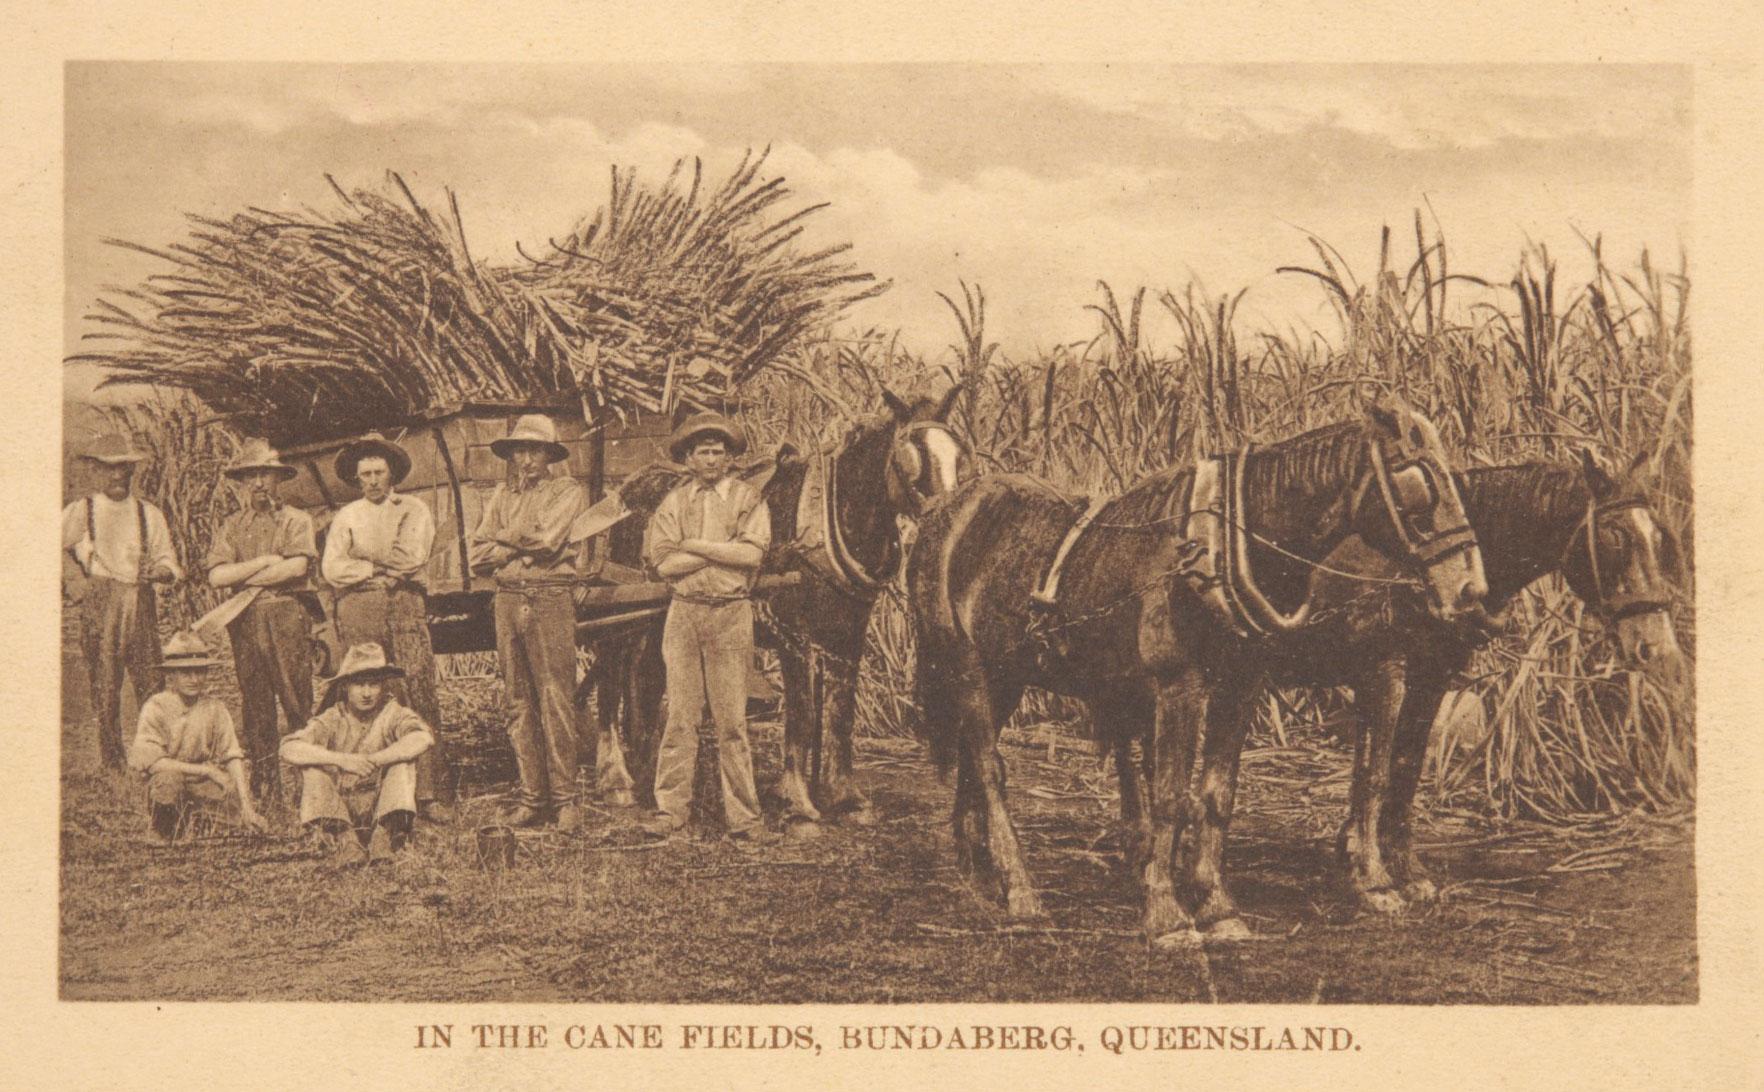 Photographic postcard, 'In the Cane Fields, Bundaberg, Queensland', about 1914.